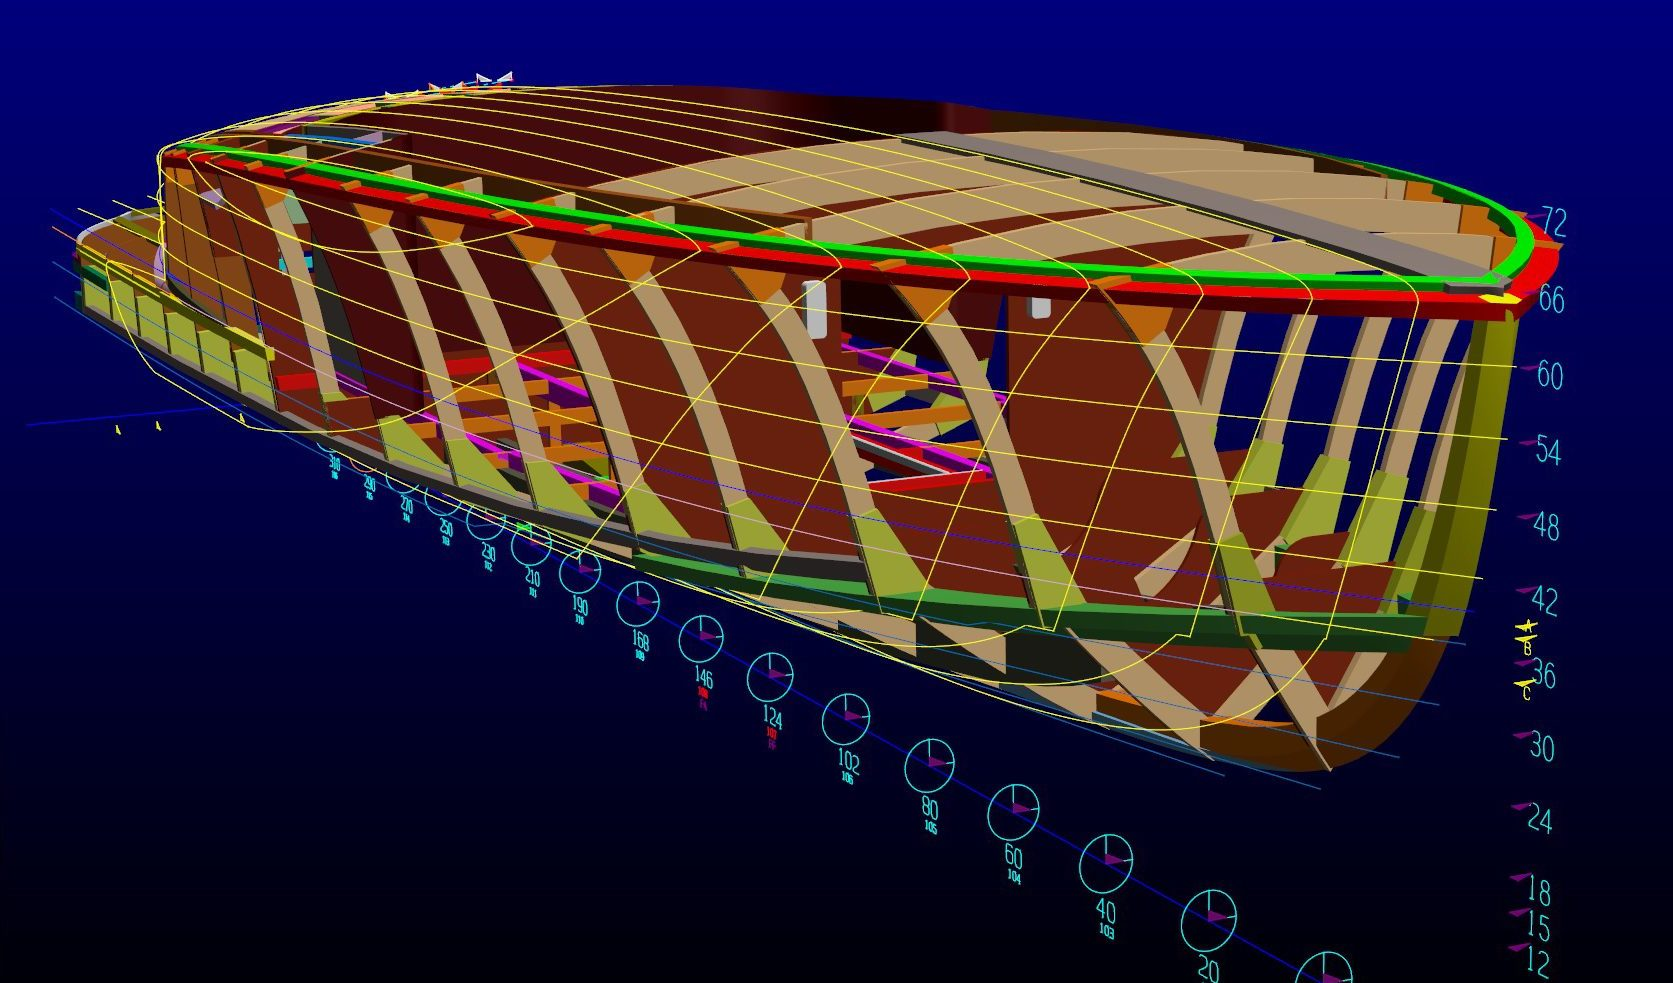 3D rendering of a custom wooden boat.